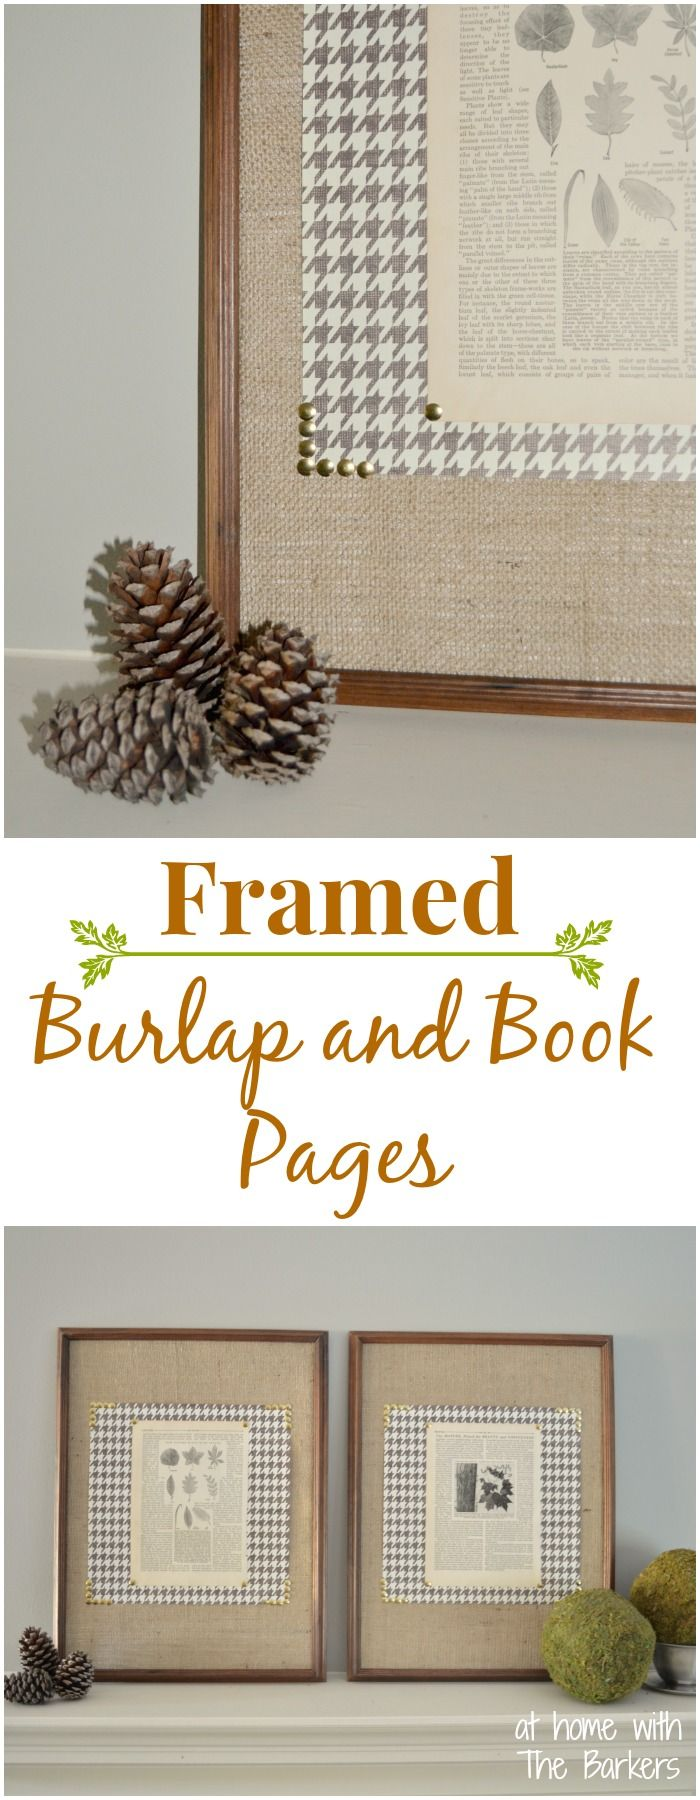 Easy DIY Fall Art with Burlap and Book Pages from a thrift store book.